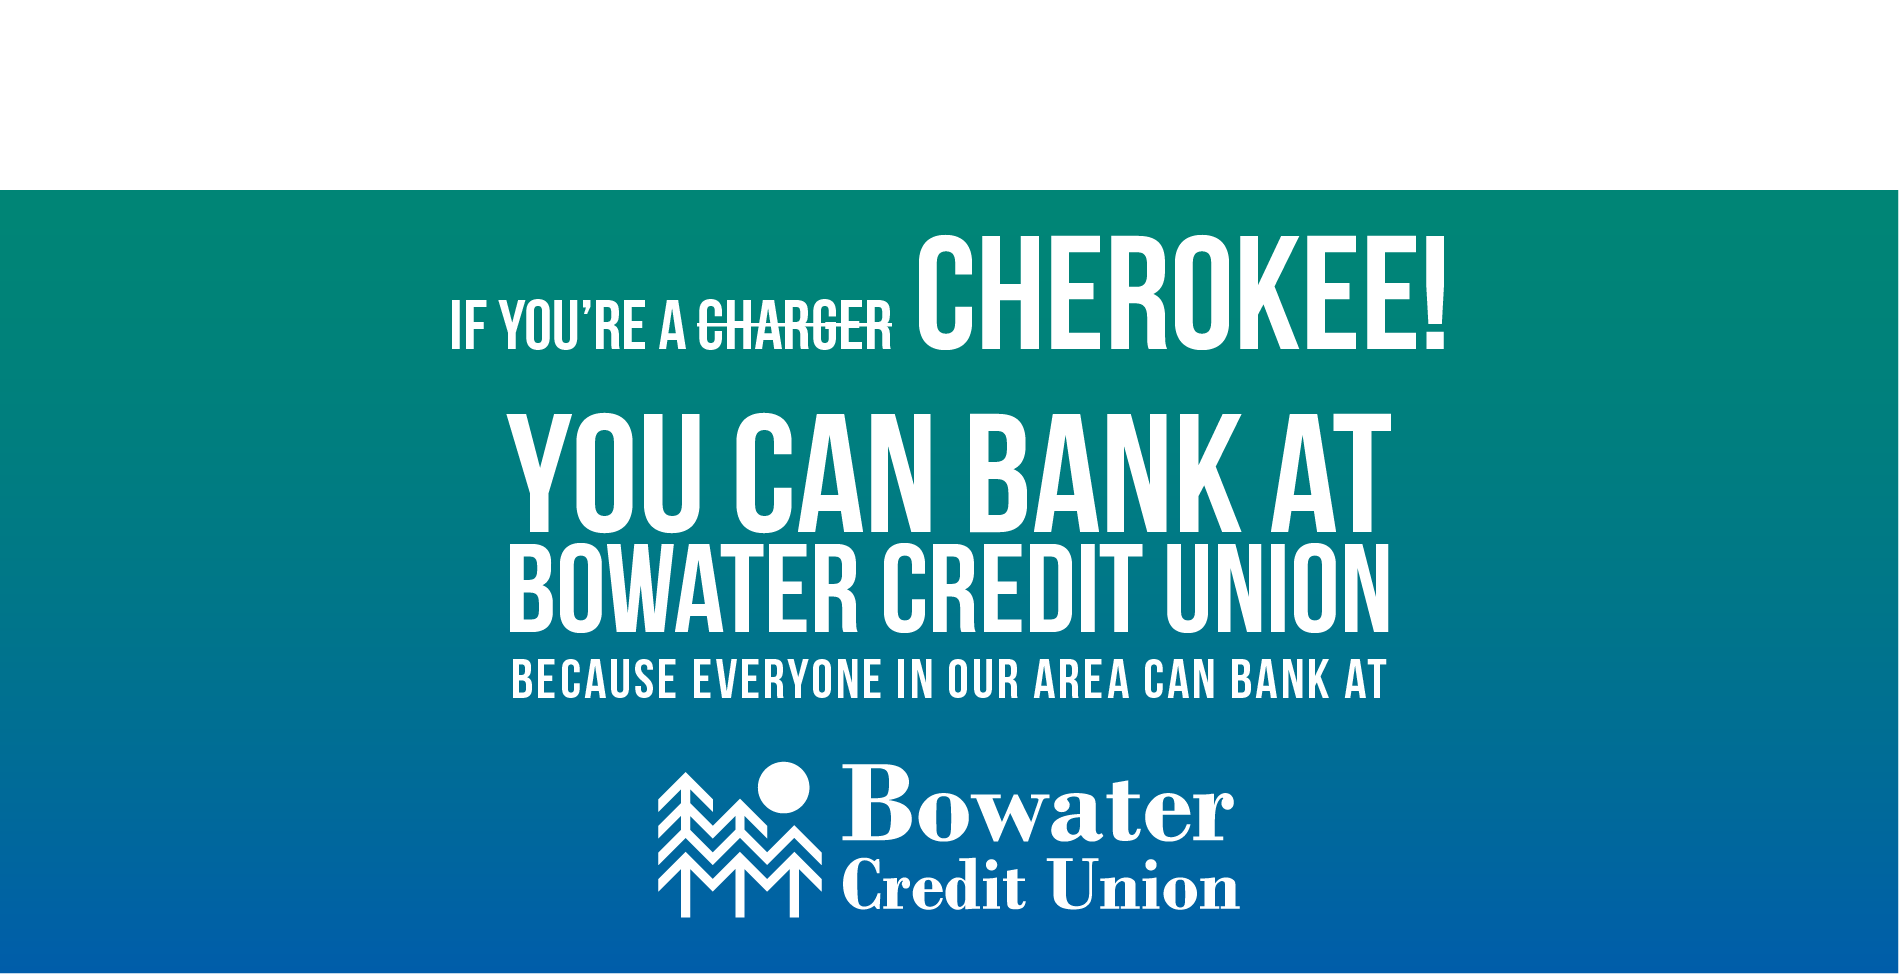 if you're a Cherokee you can bank at Bowater Credit Union